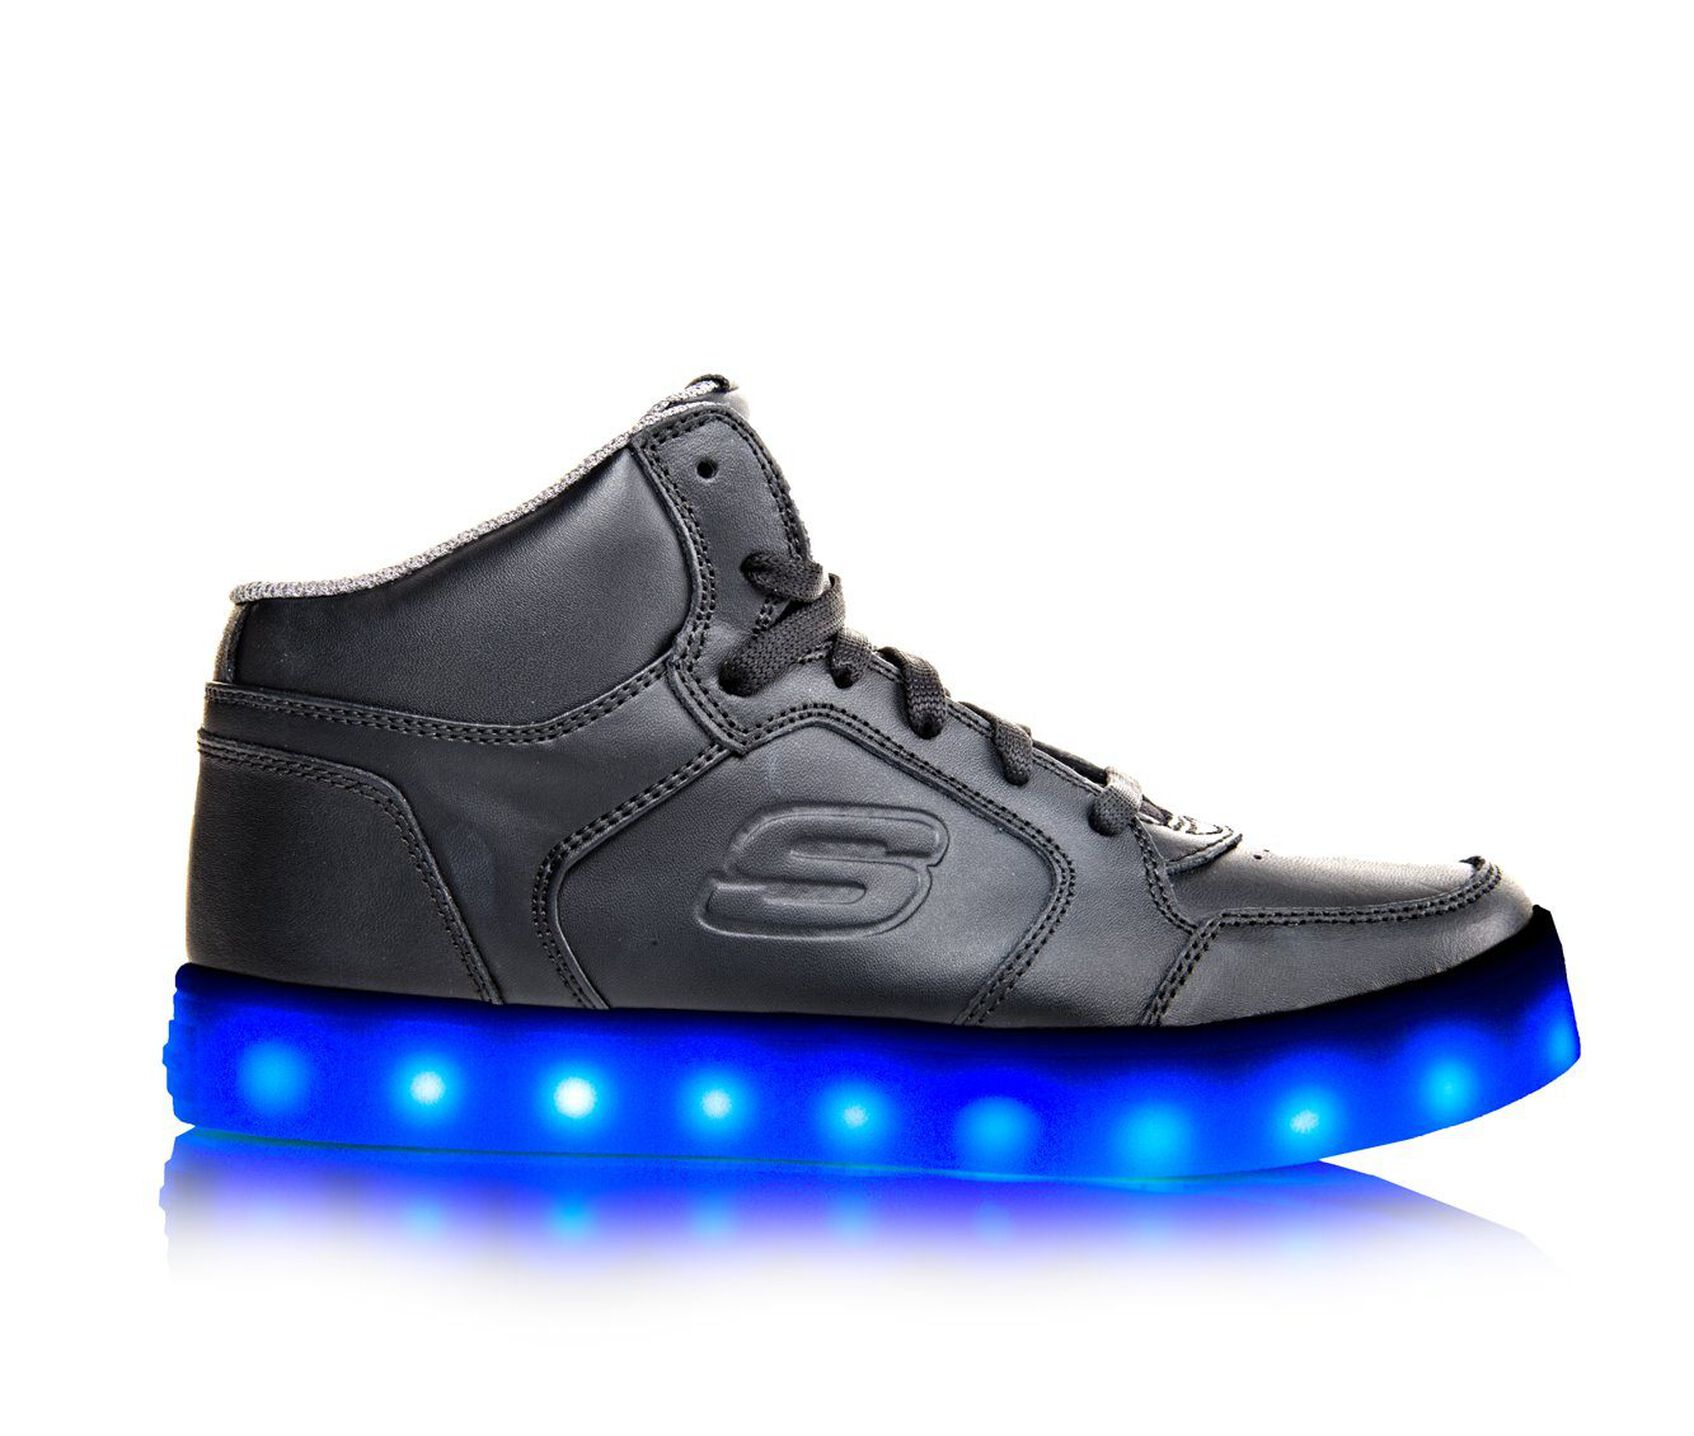 Skechers Light Up Shoes White